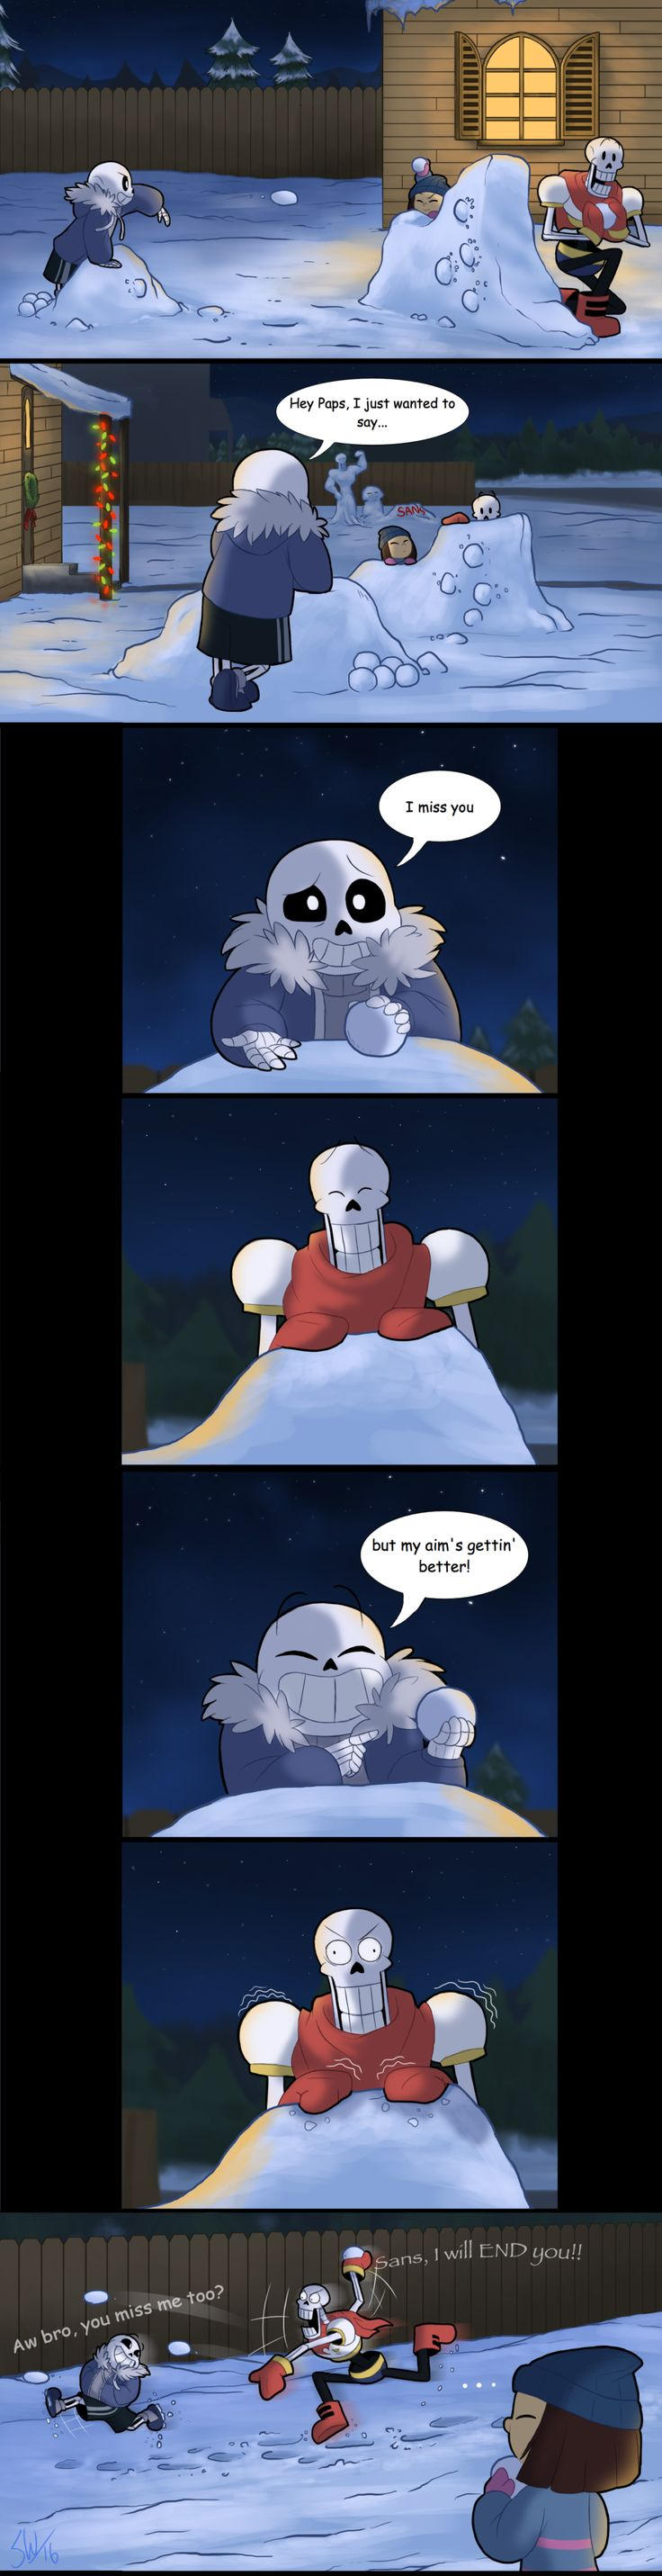 Undertale - I Miss You by TC-96.deviantart.com on @DeviantArt